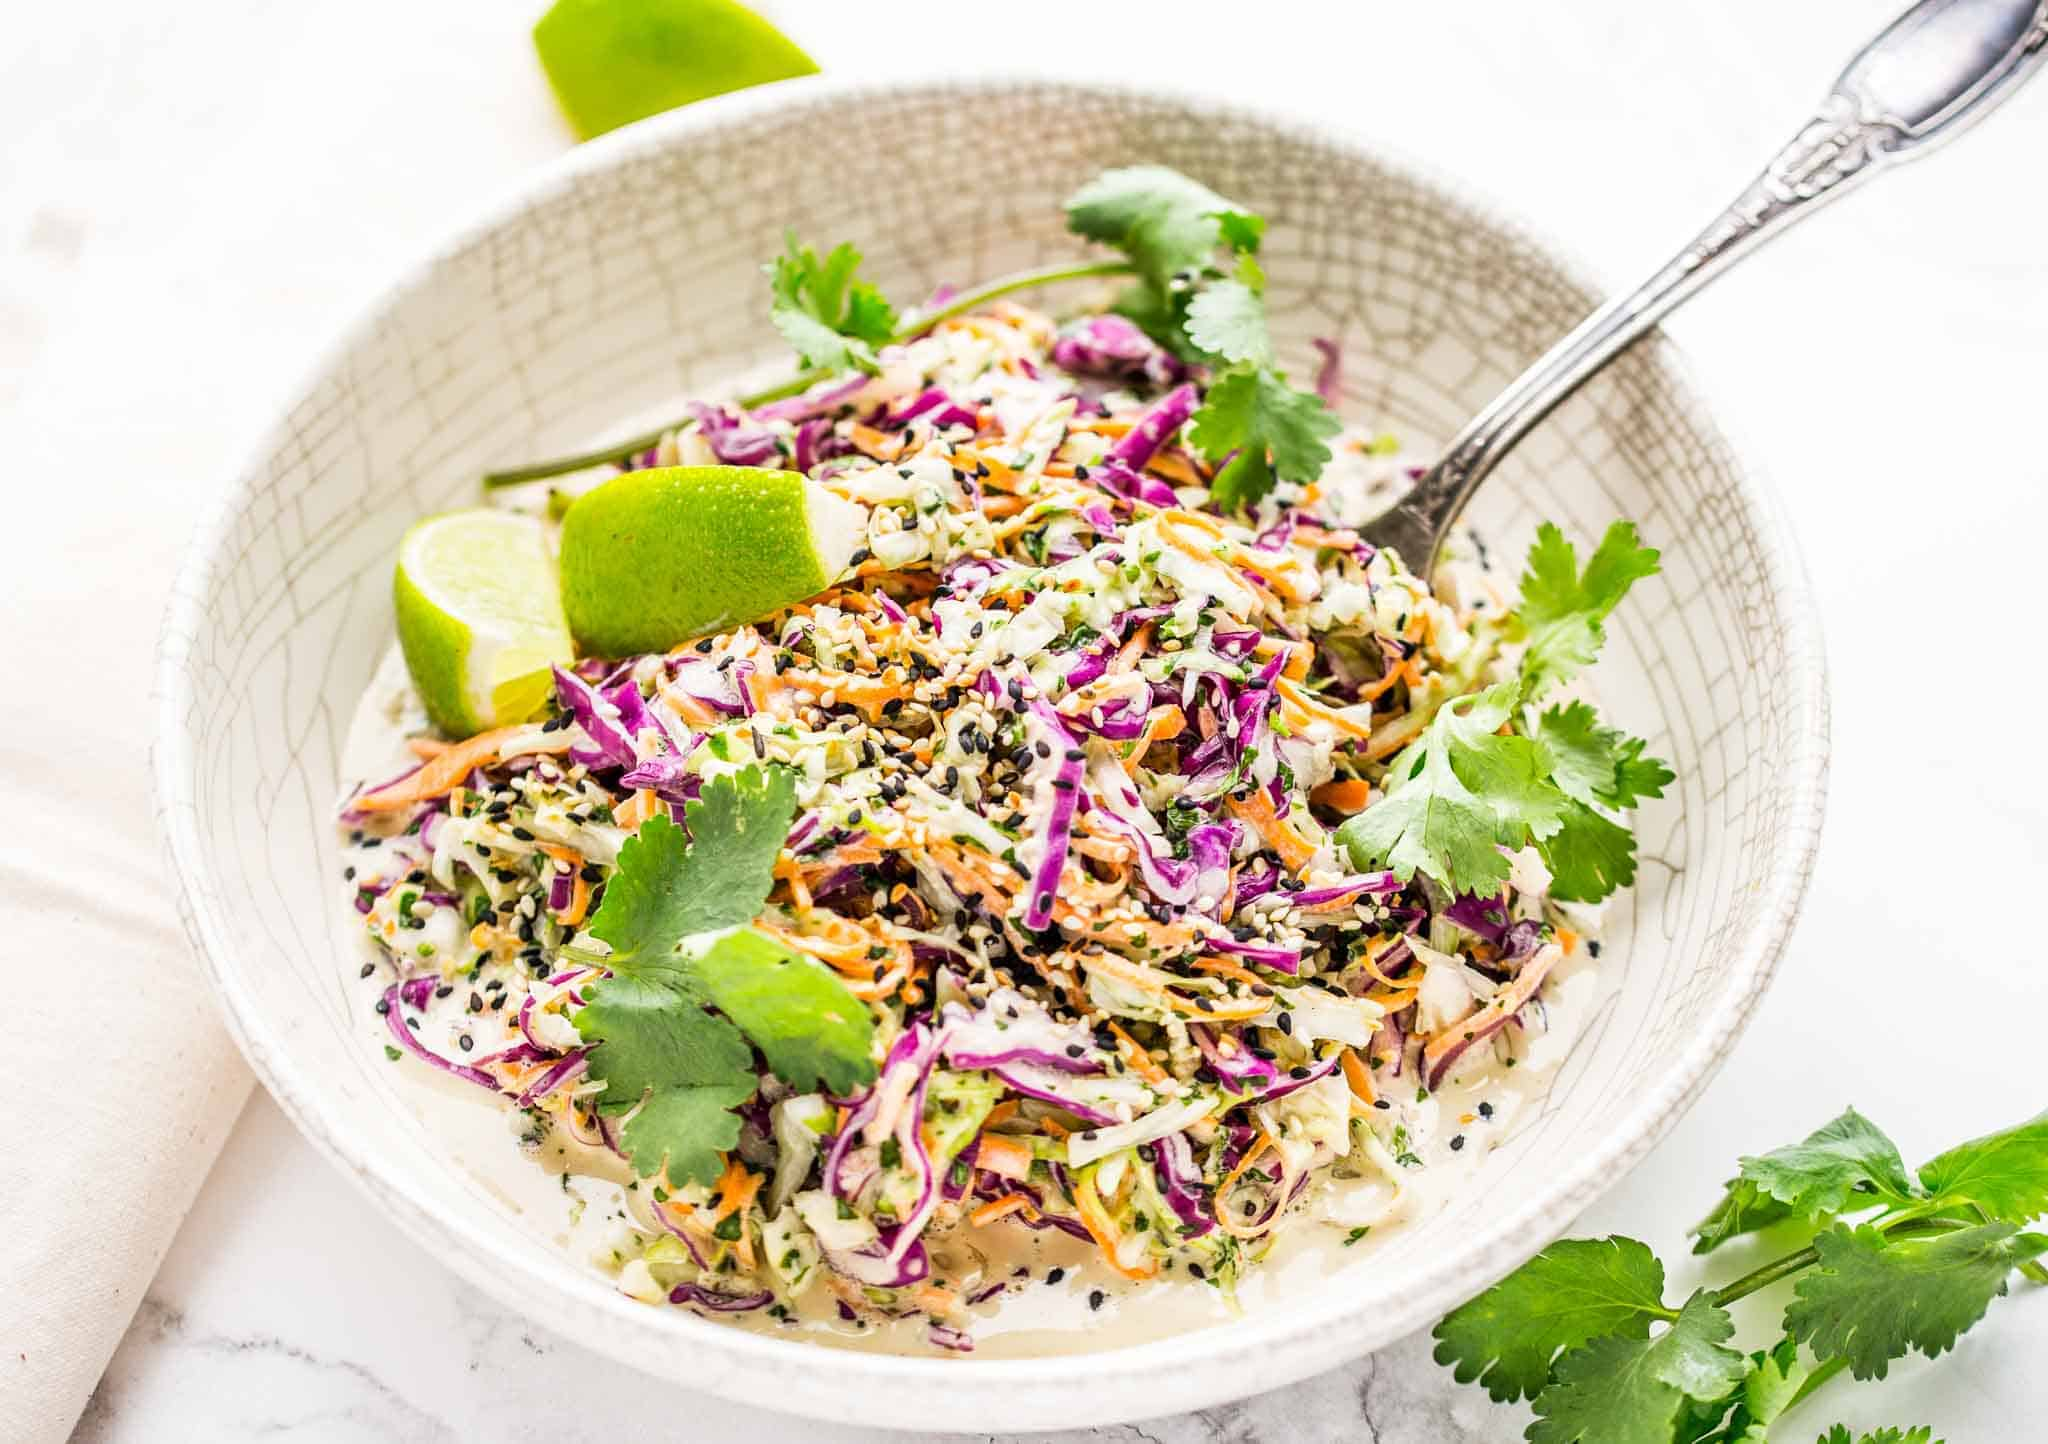 Homemade crunchy coleslaw with tahini dressing